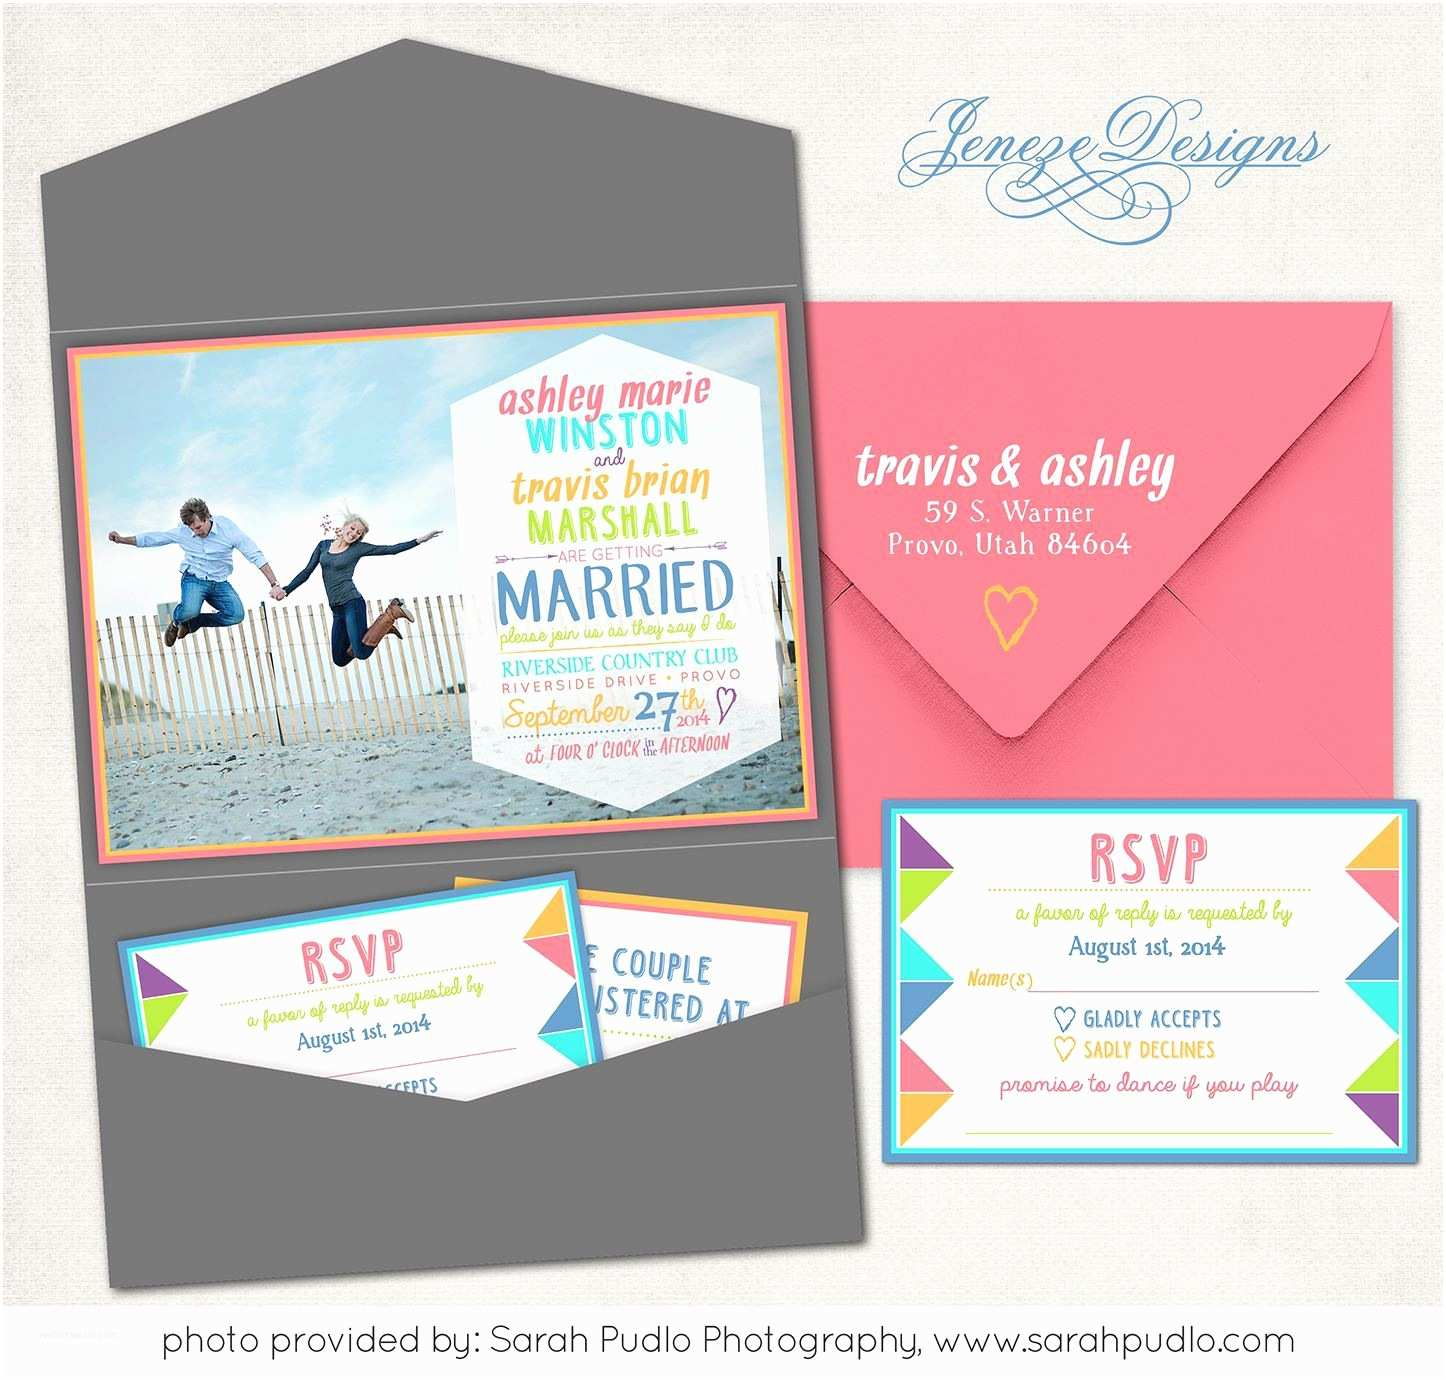 Invitations With Response Cards And Envelopes  Invitations With Rsvp Cards Included